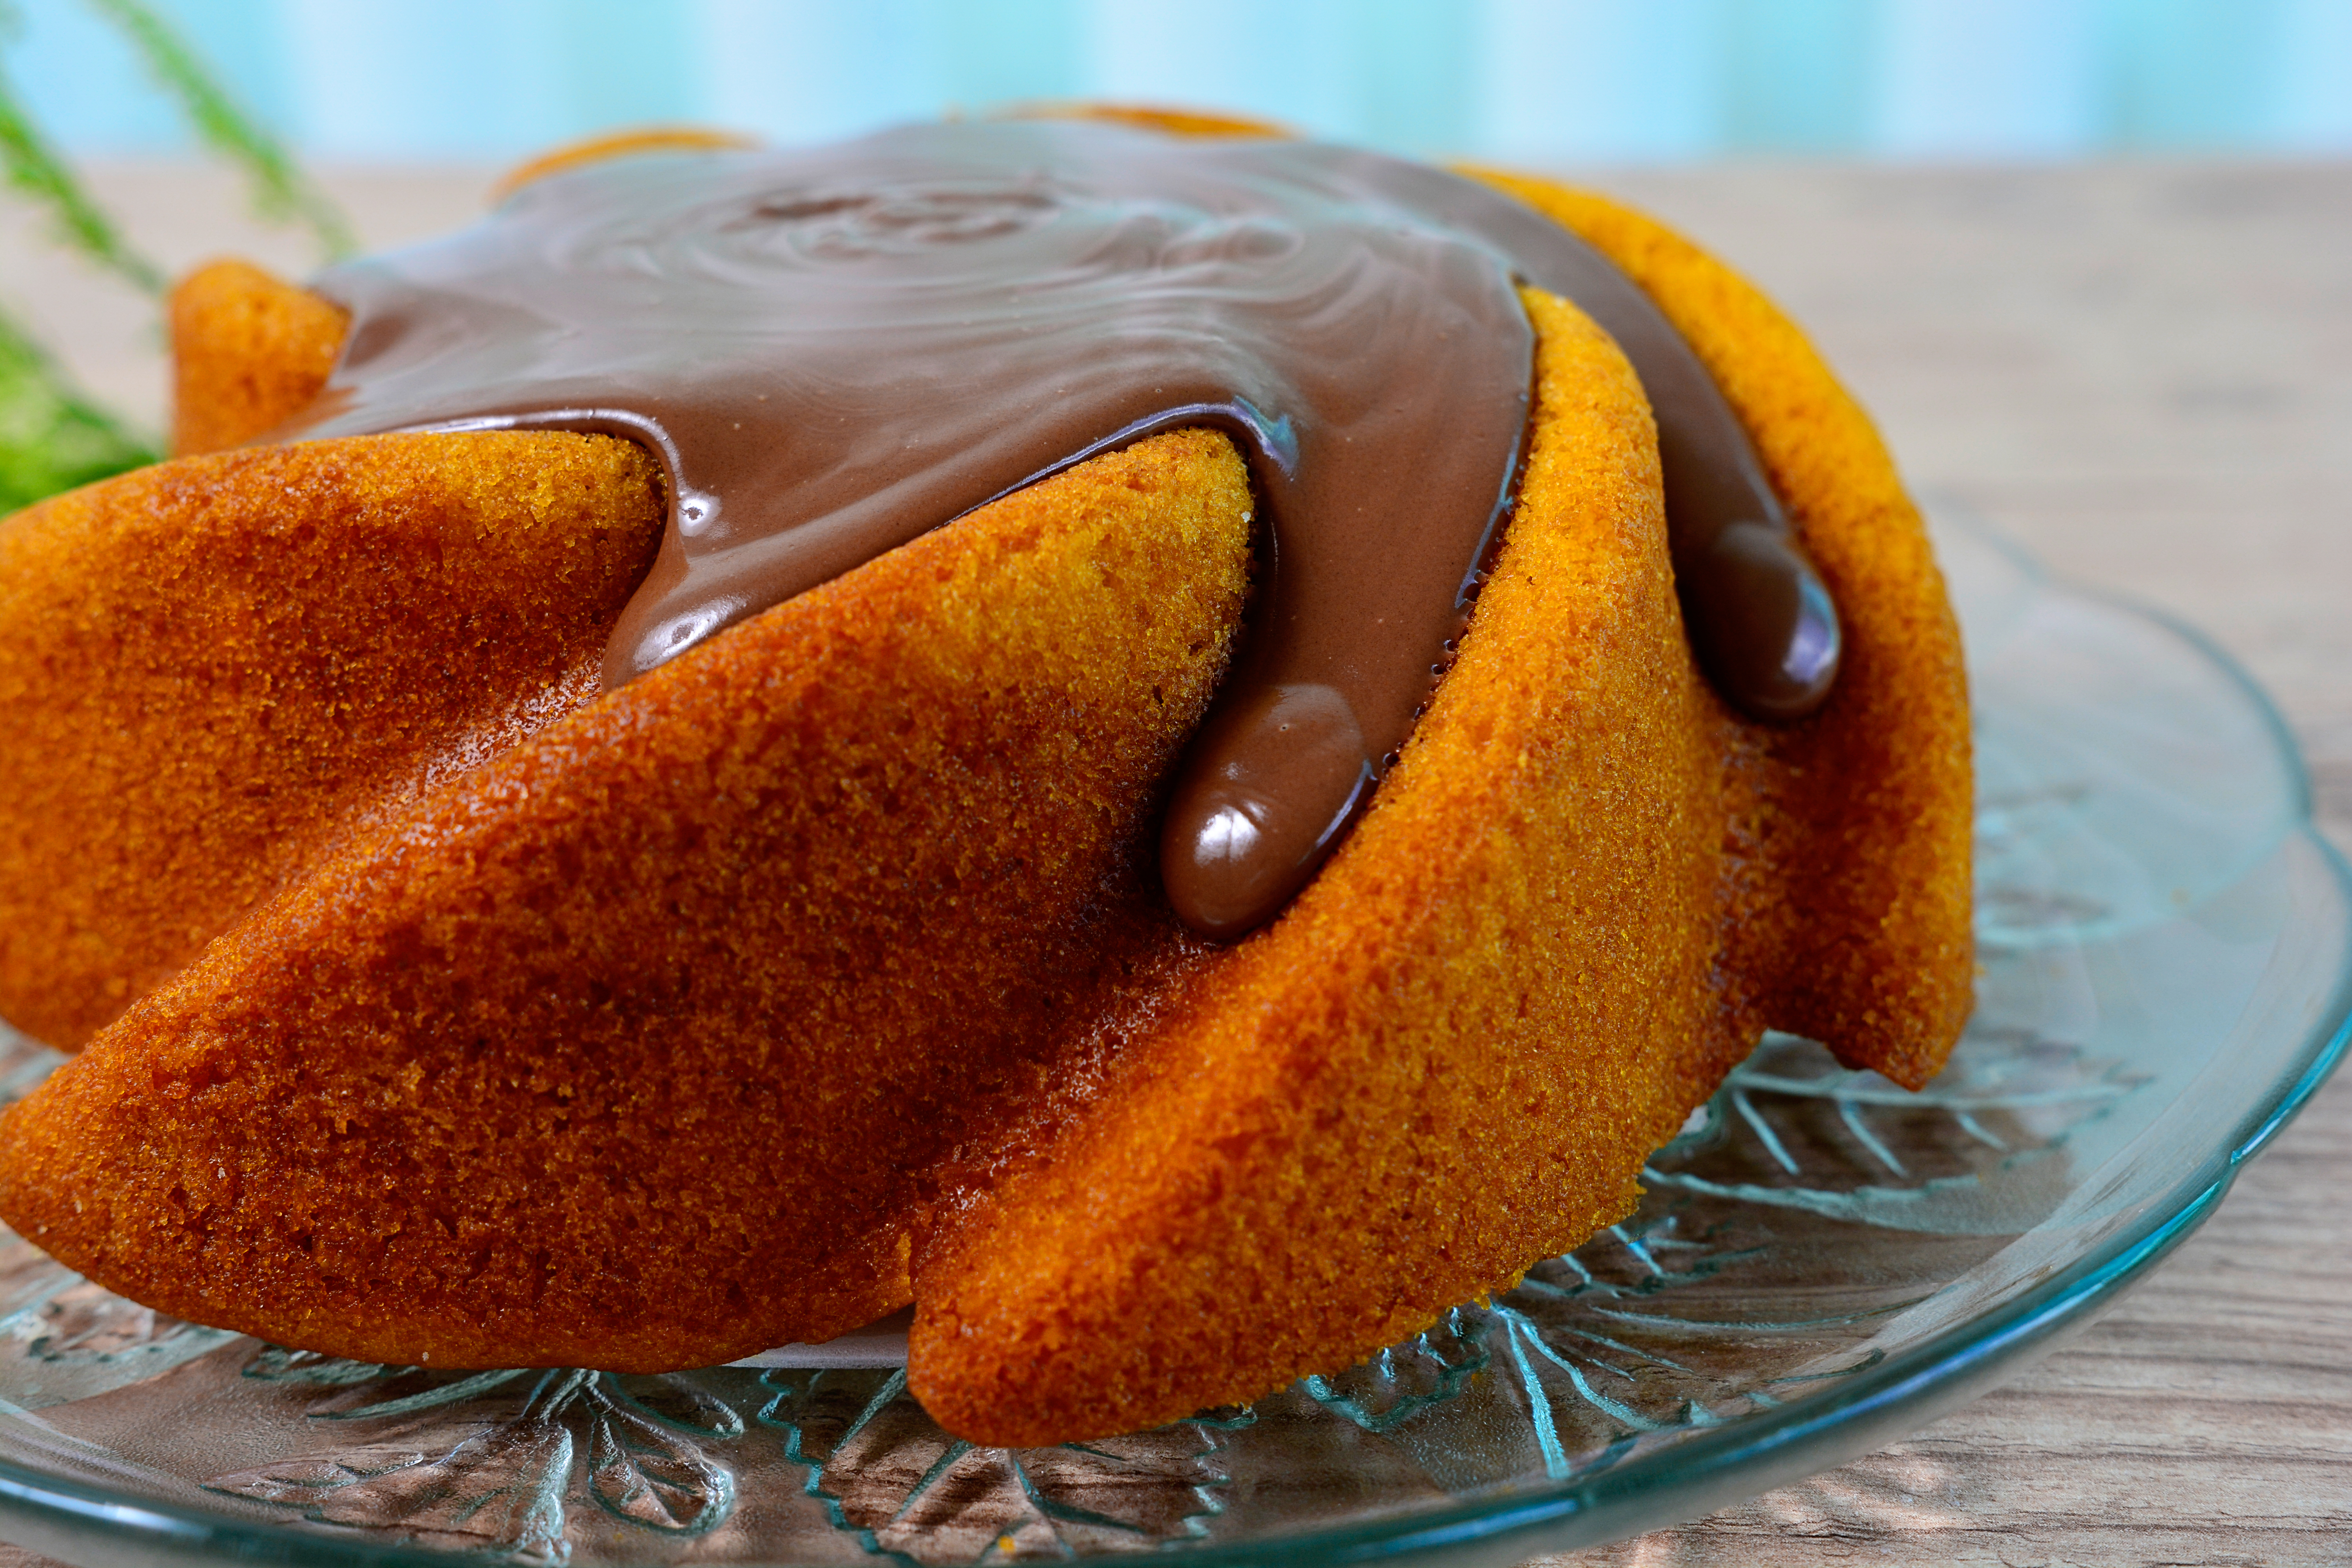 Cake With Chocolate and Chocolate Truffle Topping, Close Up View of Carrot cake